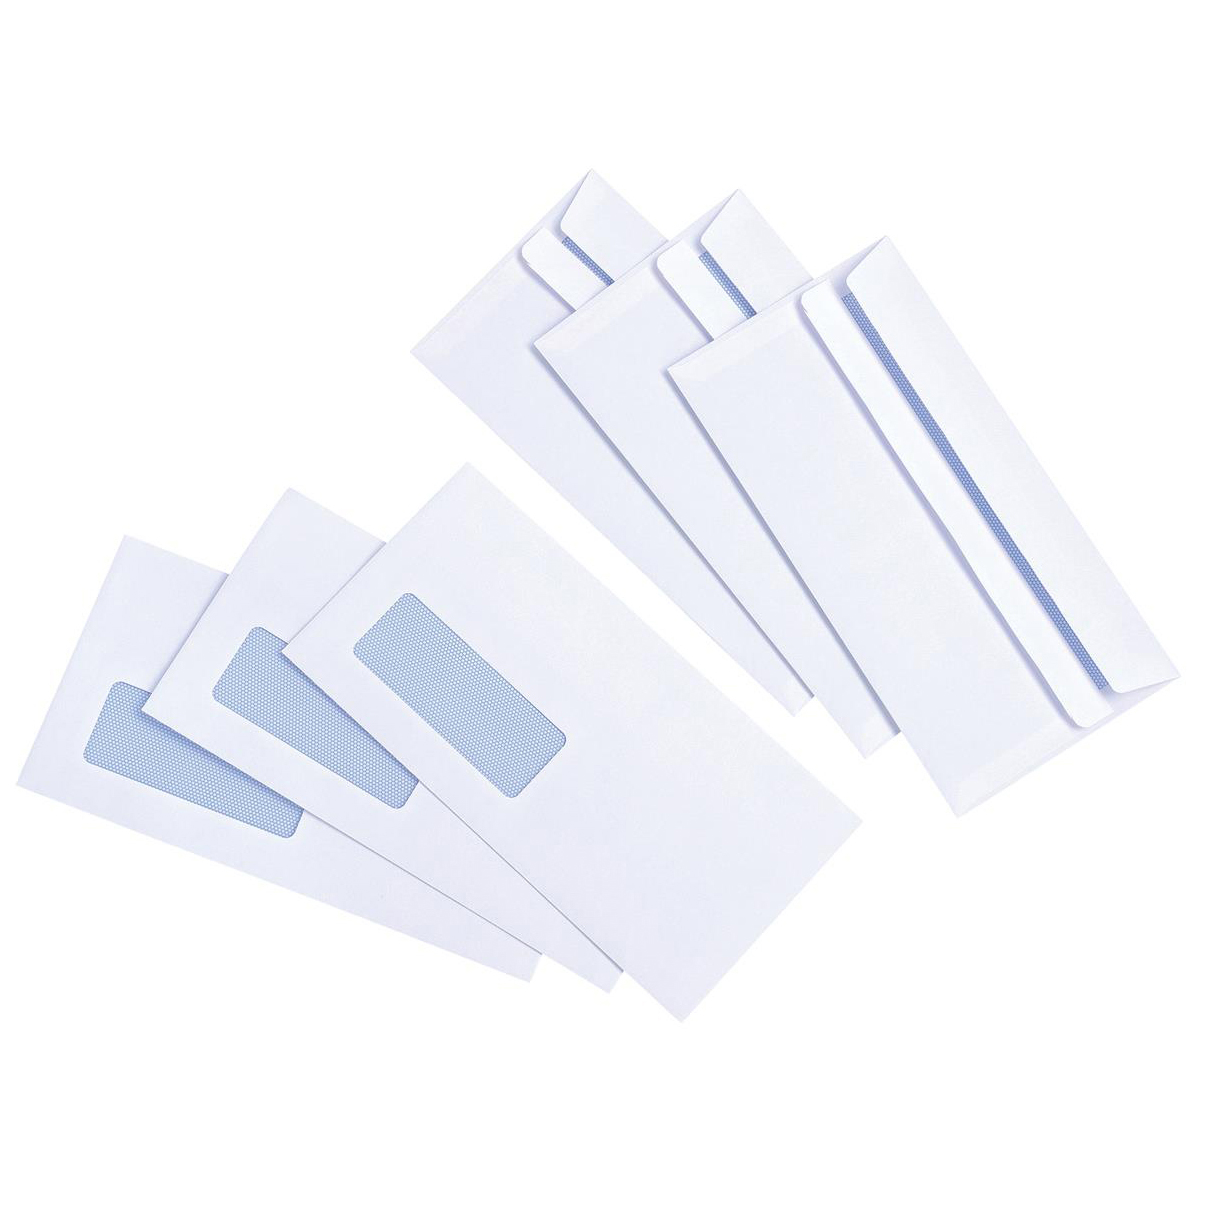 DL 5 Star Value Envelopes Wallet Press Seal Window 90gsm DL 110x220mm White Pack 1000